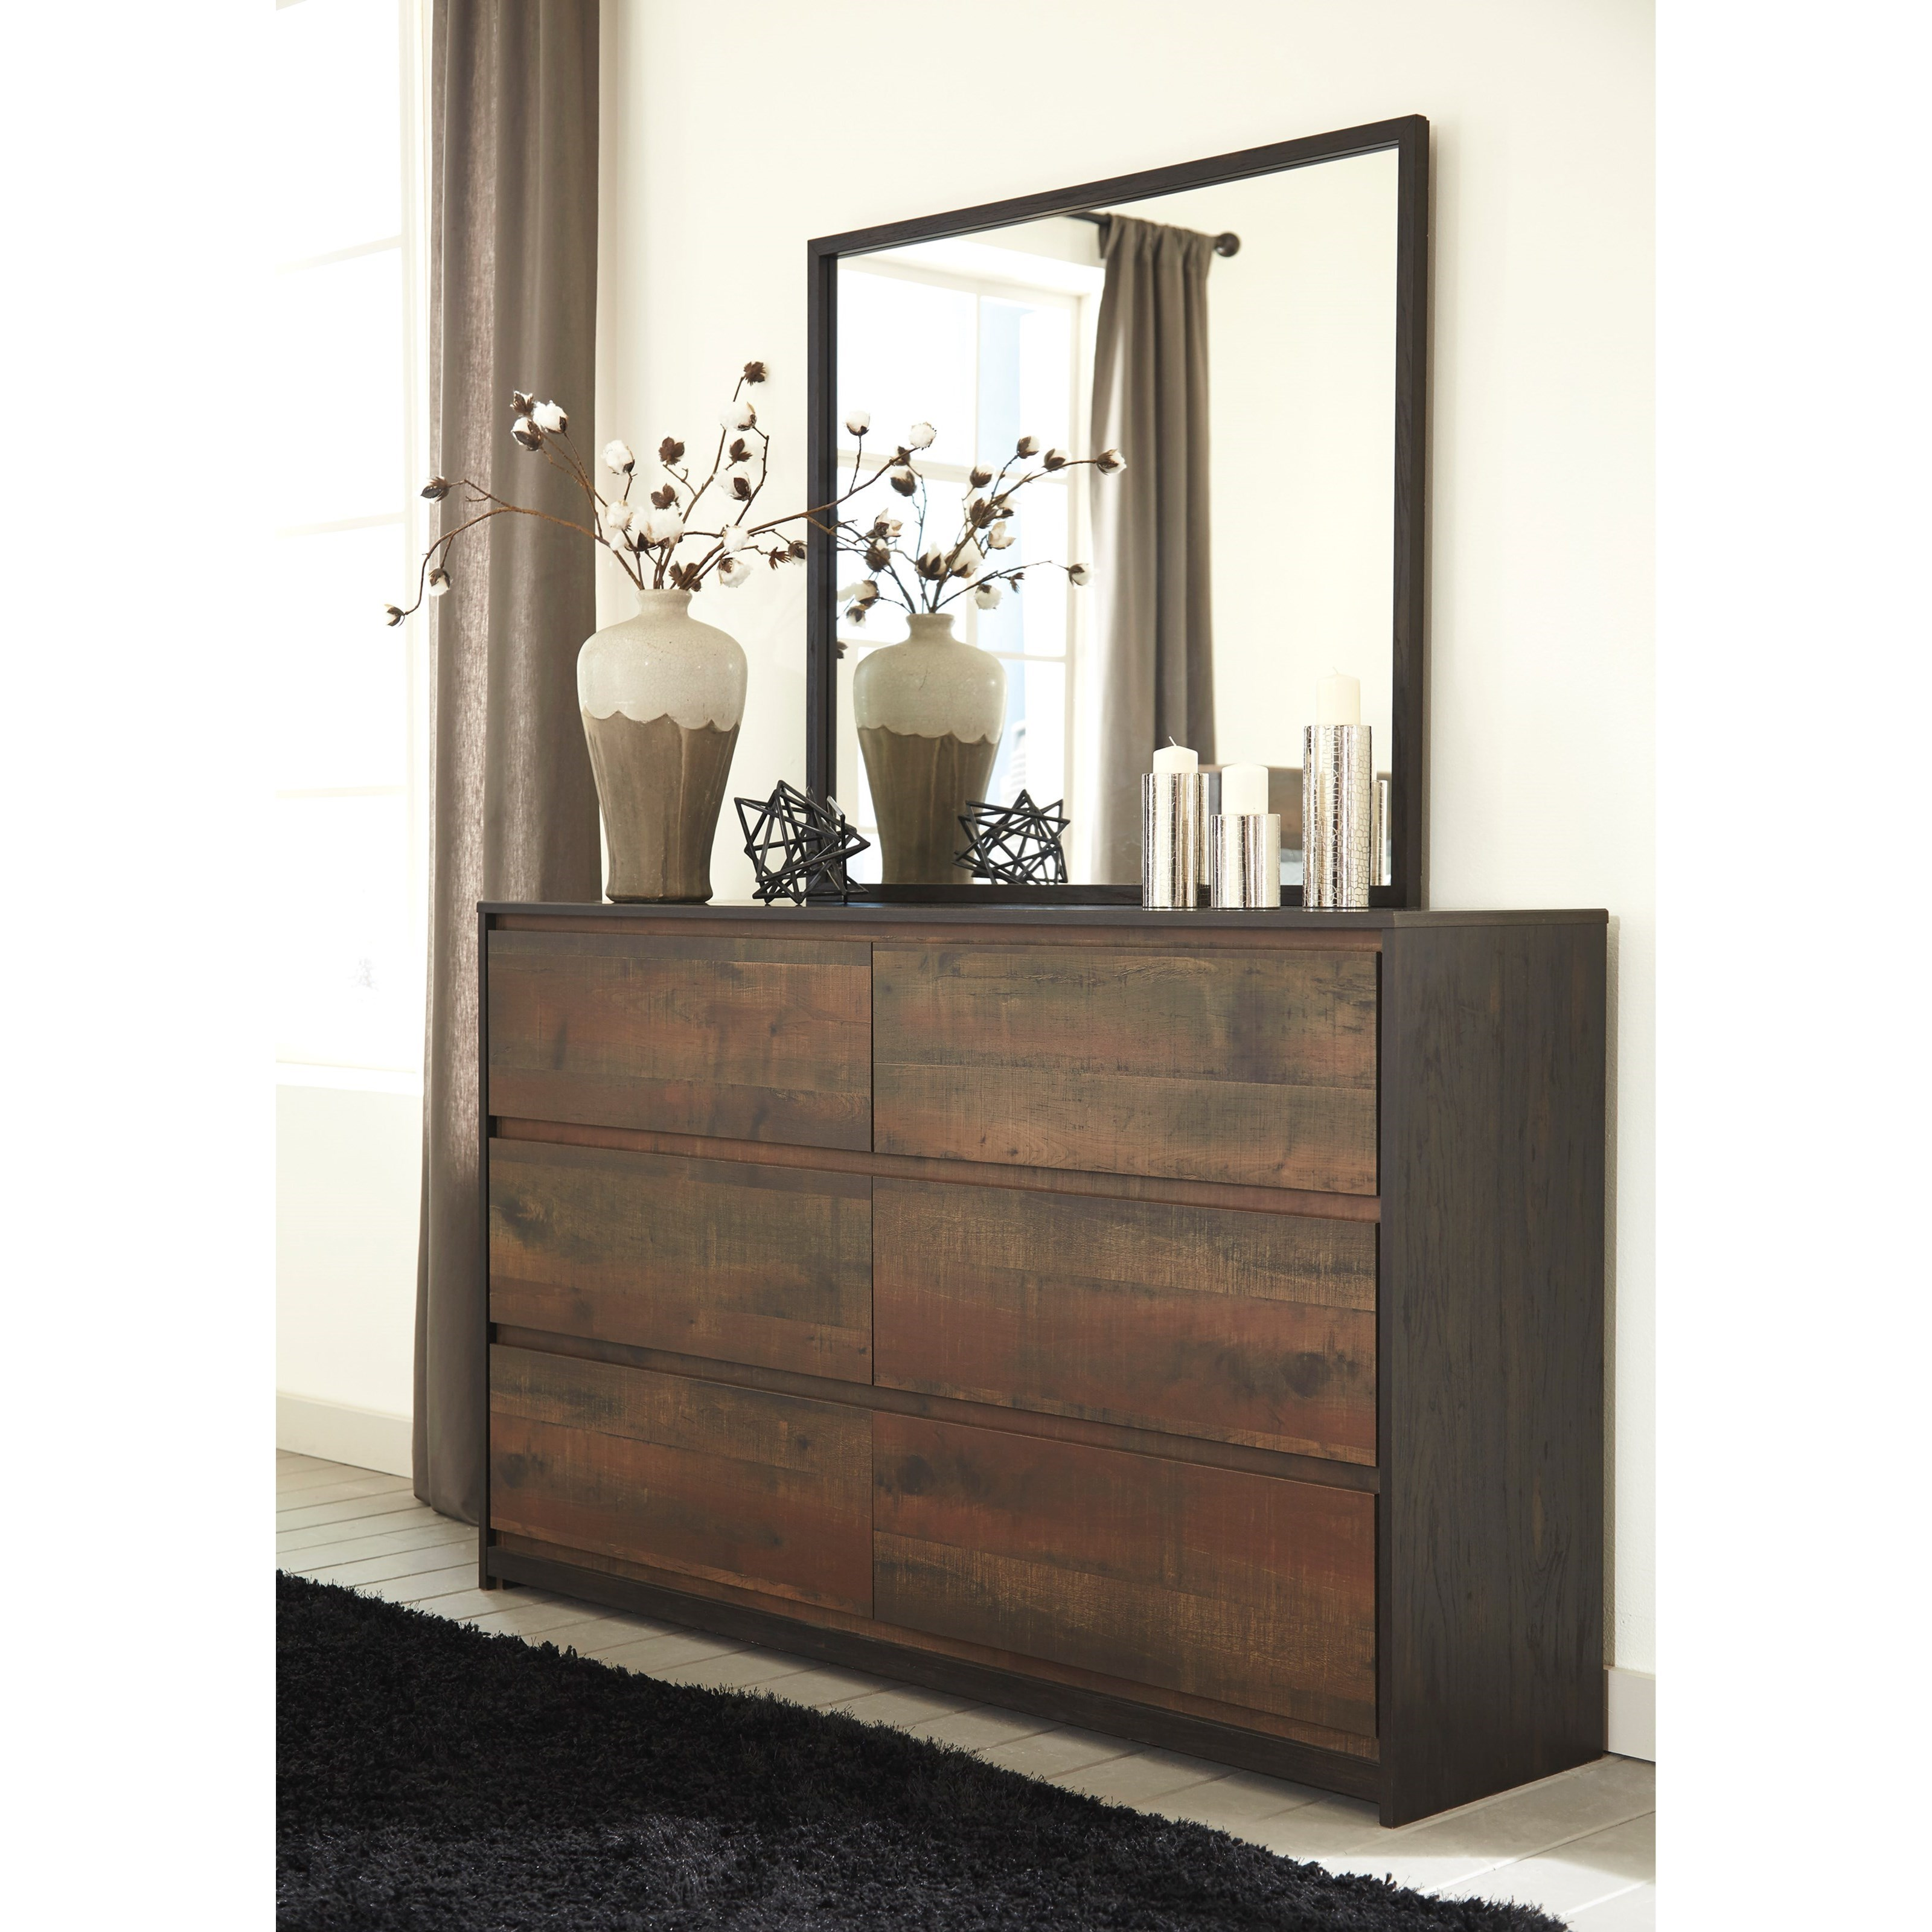 Ashley Furniture Signature: Modern Rustic Dresser By Signature Design By Ashley